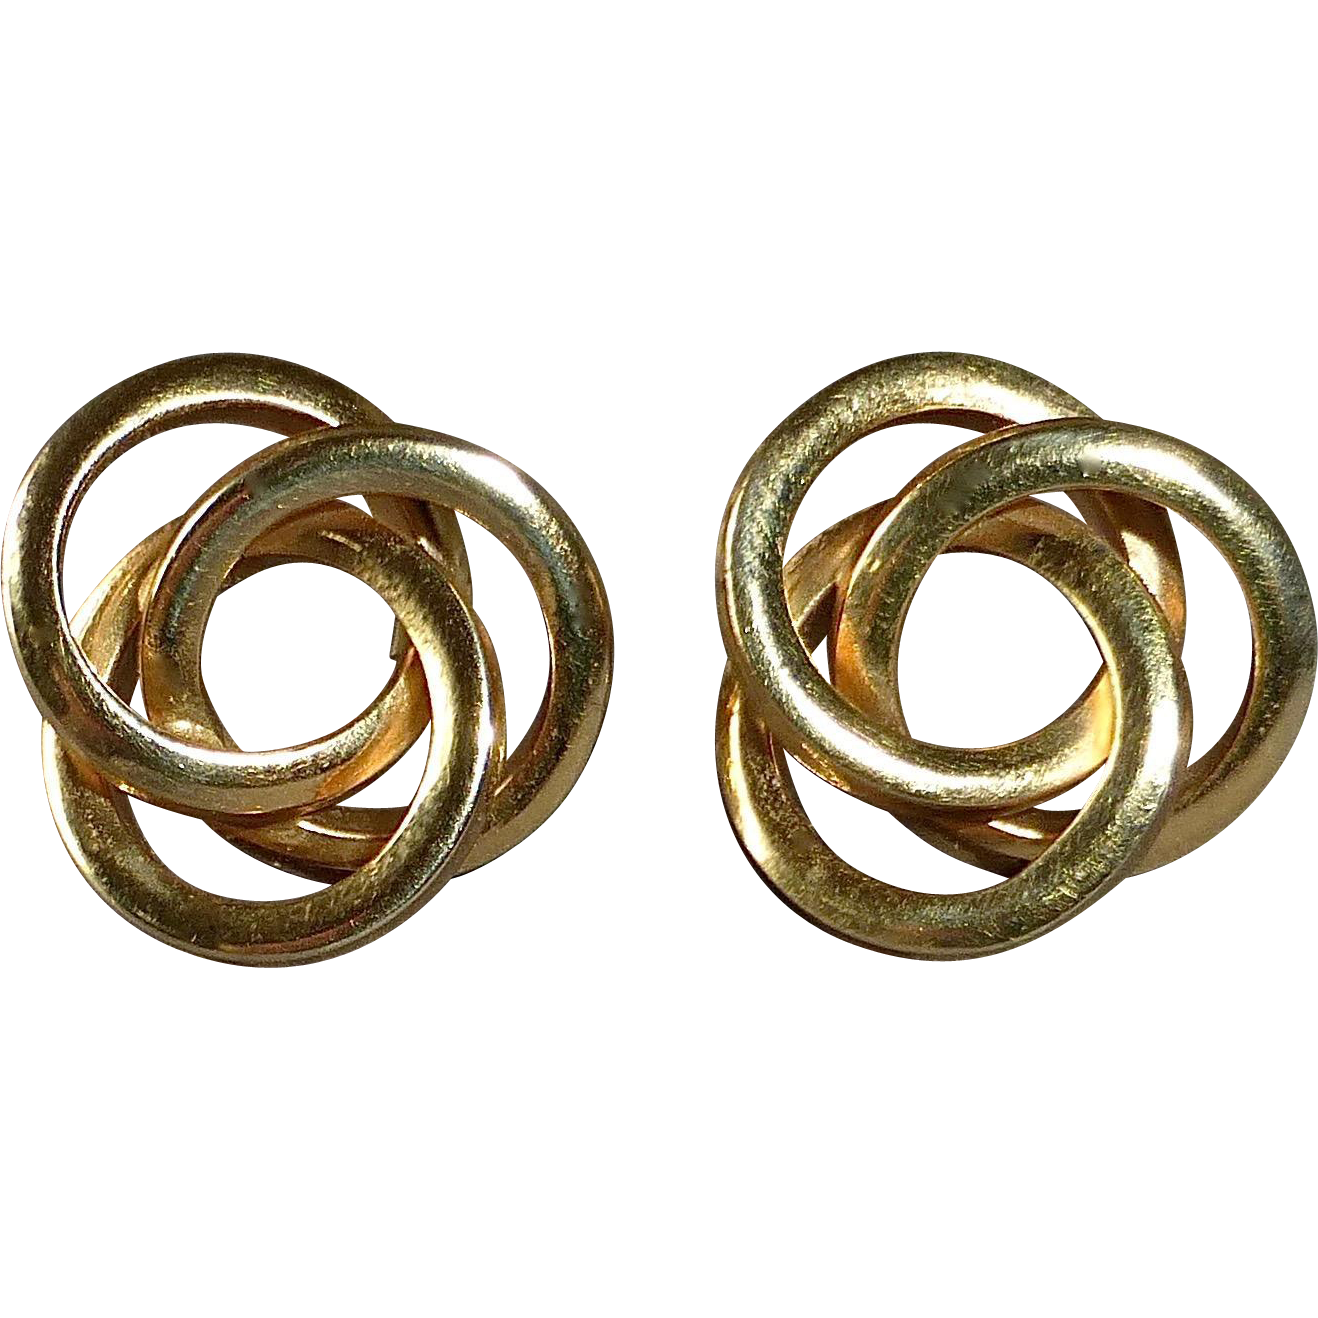 14k Yellow Gold Entwined Circle Pierced Earrings